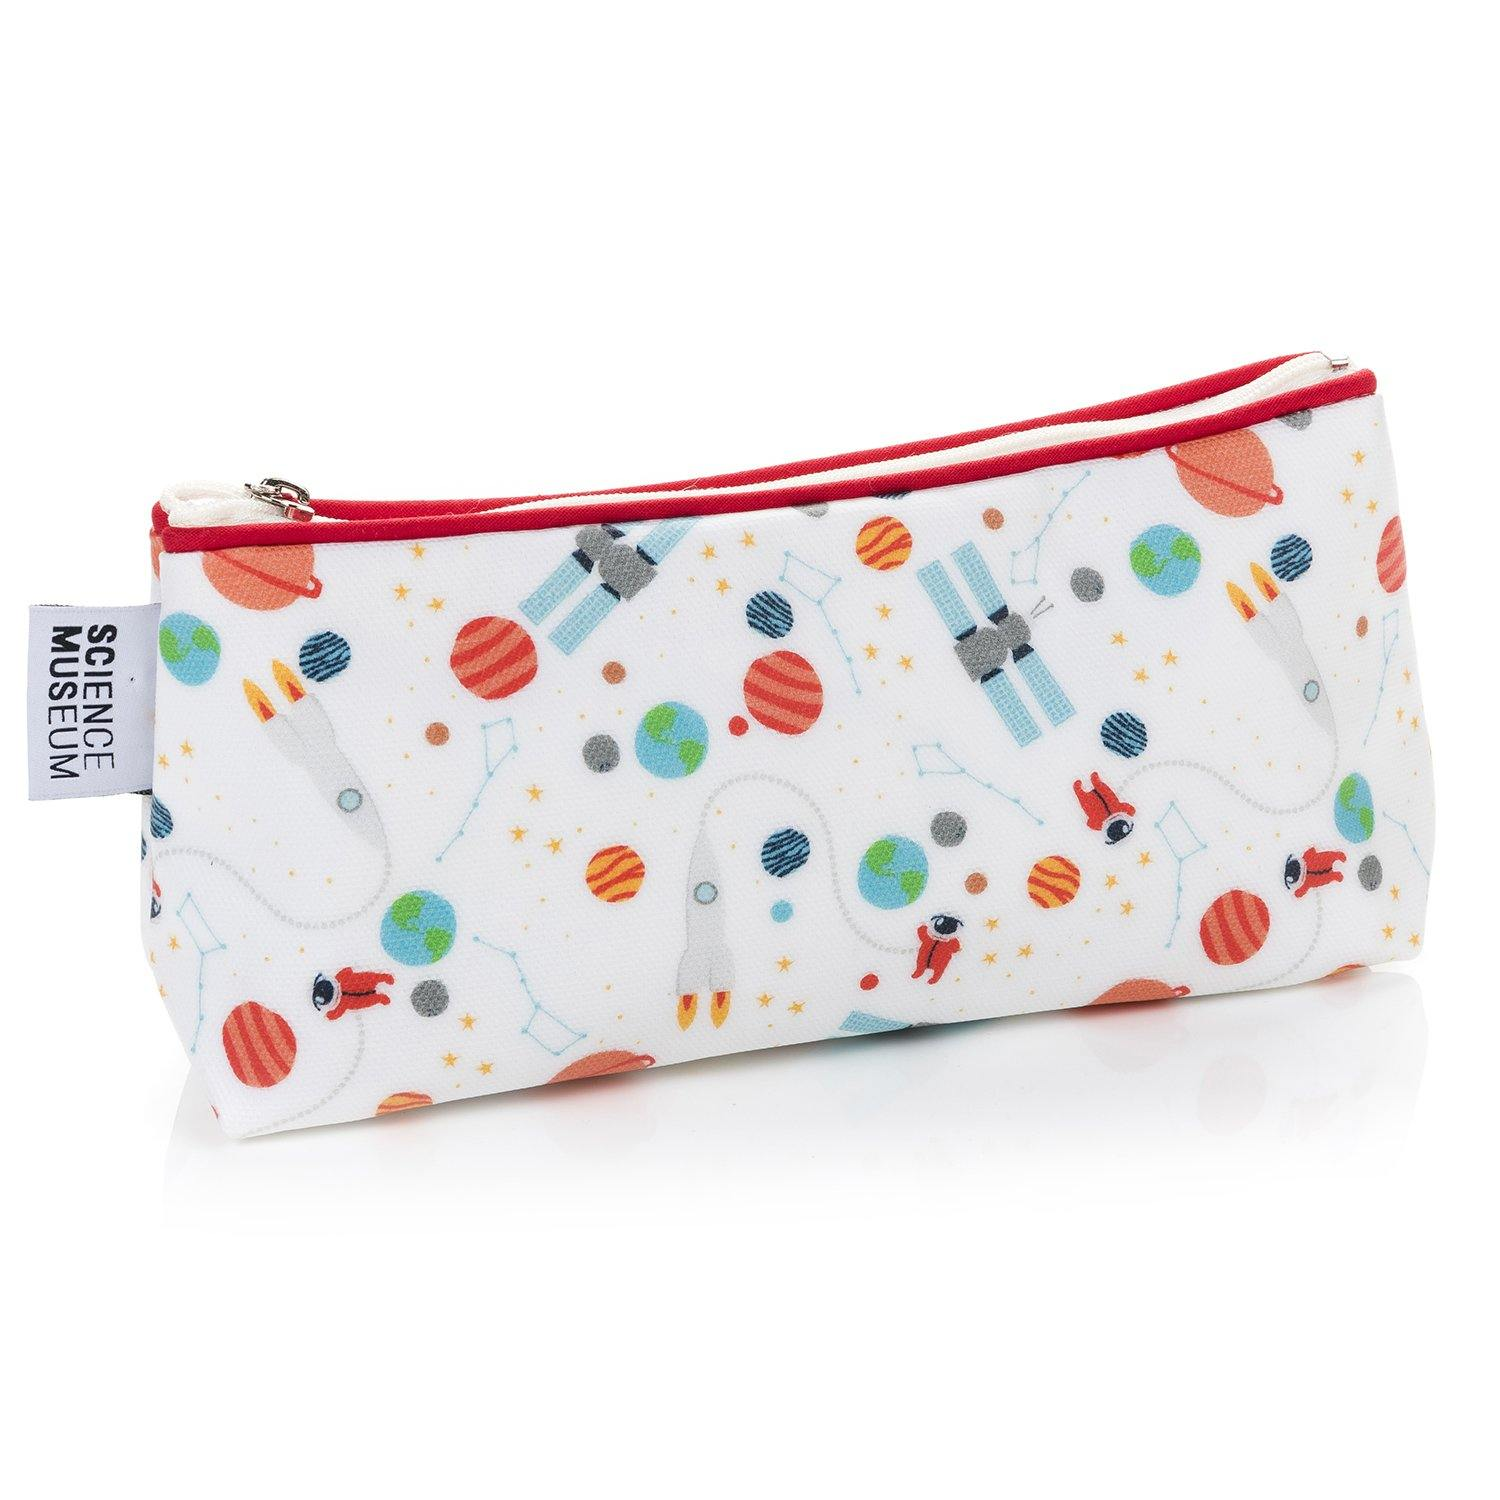 Science Museum Space Oilcloth Pencil Case 1